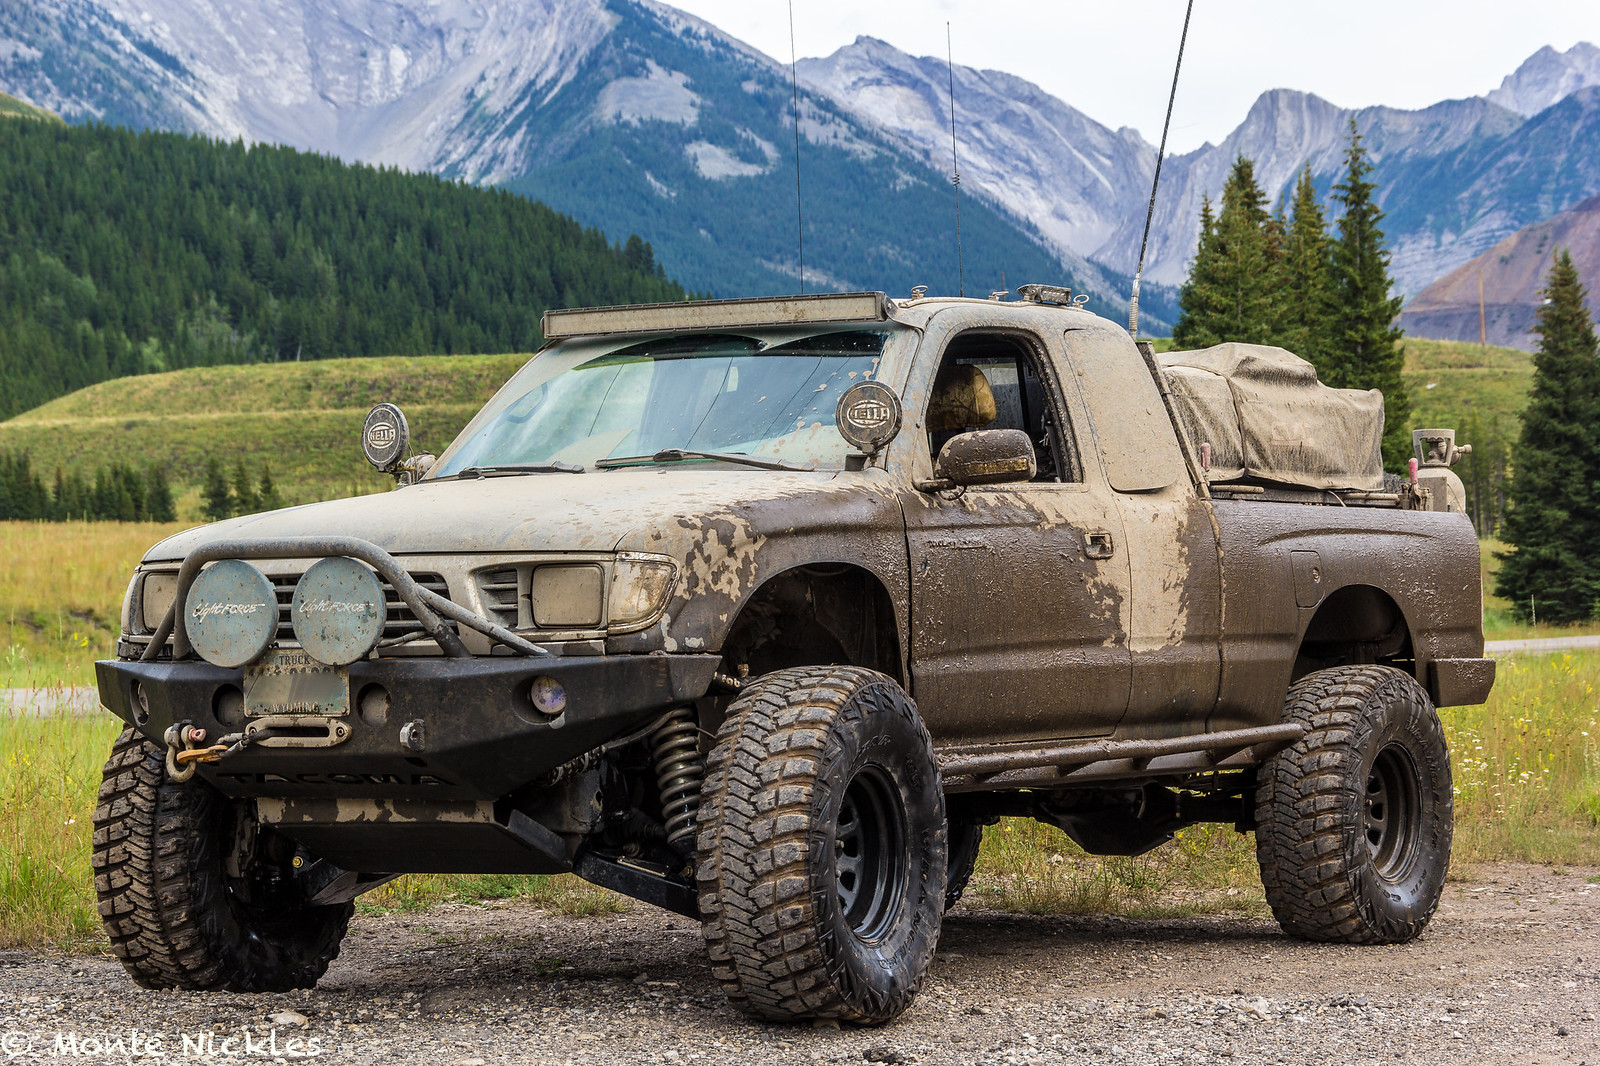 The Frankenstein Build 1996 Tacoma Long Travel Expo Trail Rig